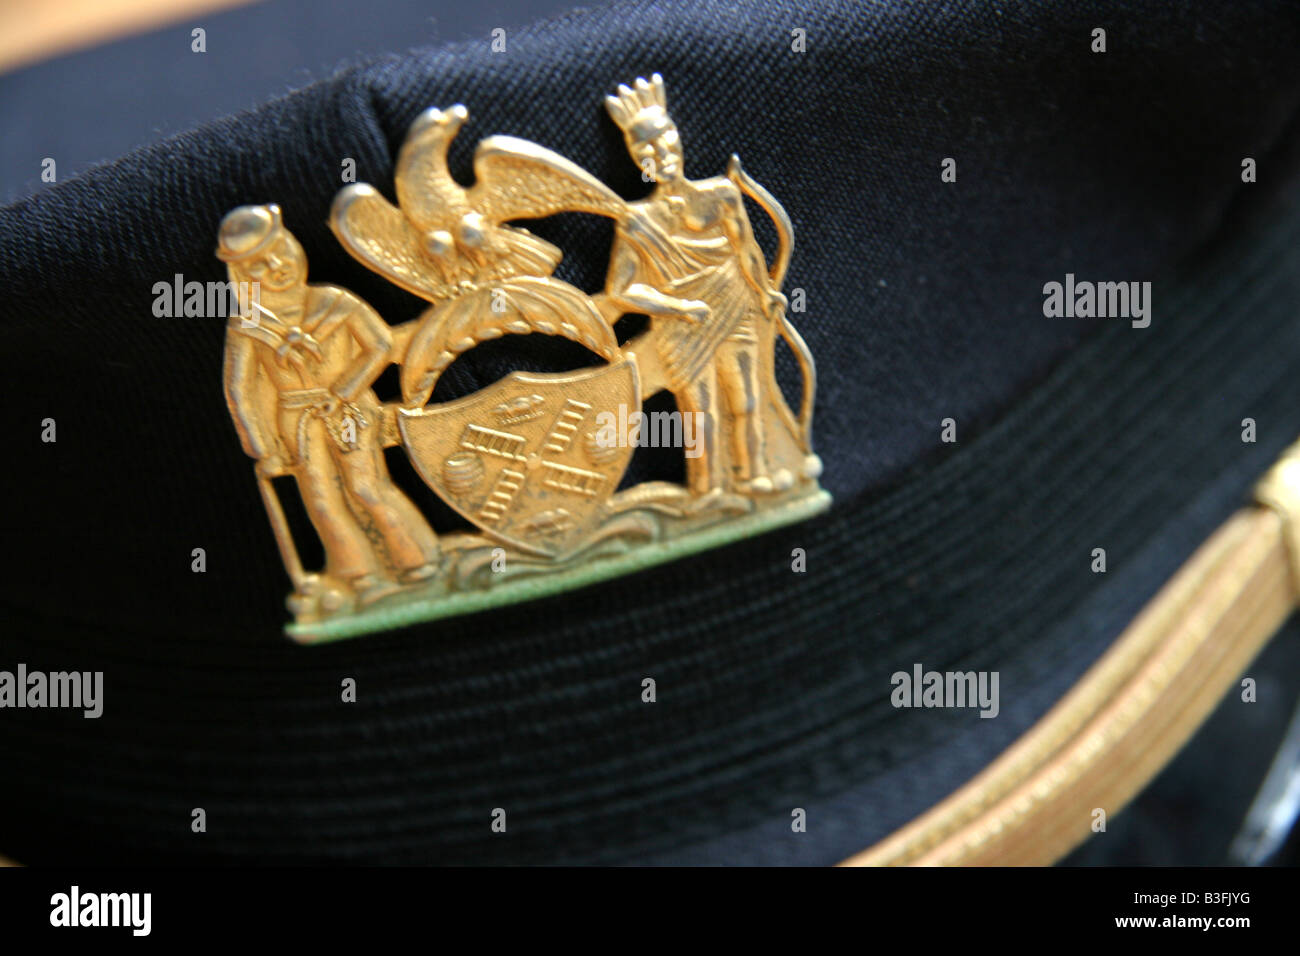 NYPD cap badge on a New York Police Department supervisors hat - Stock Image